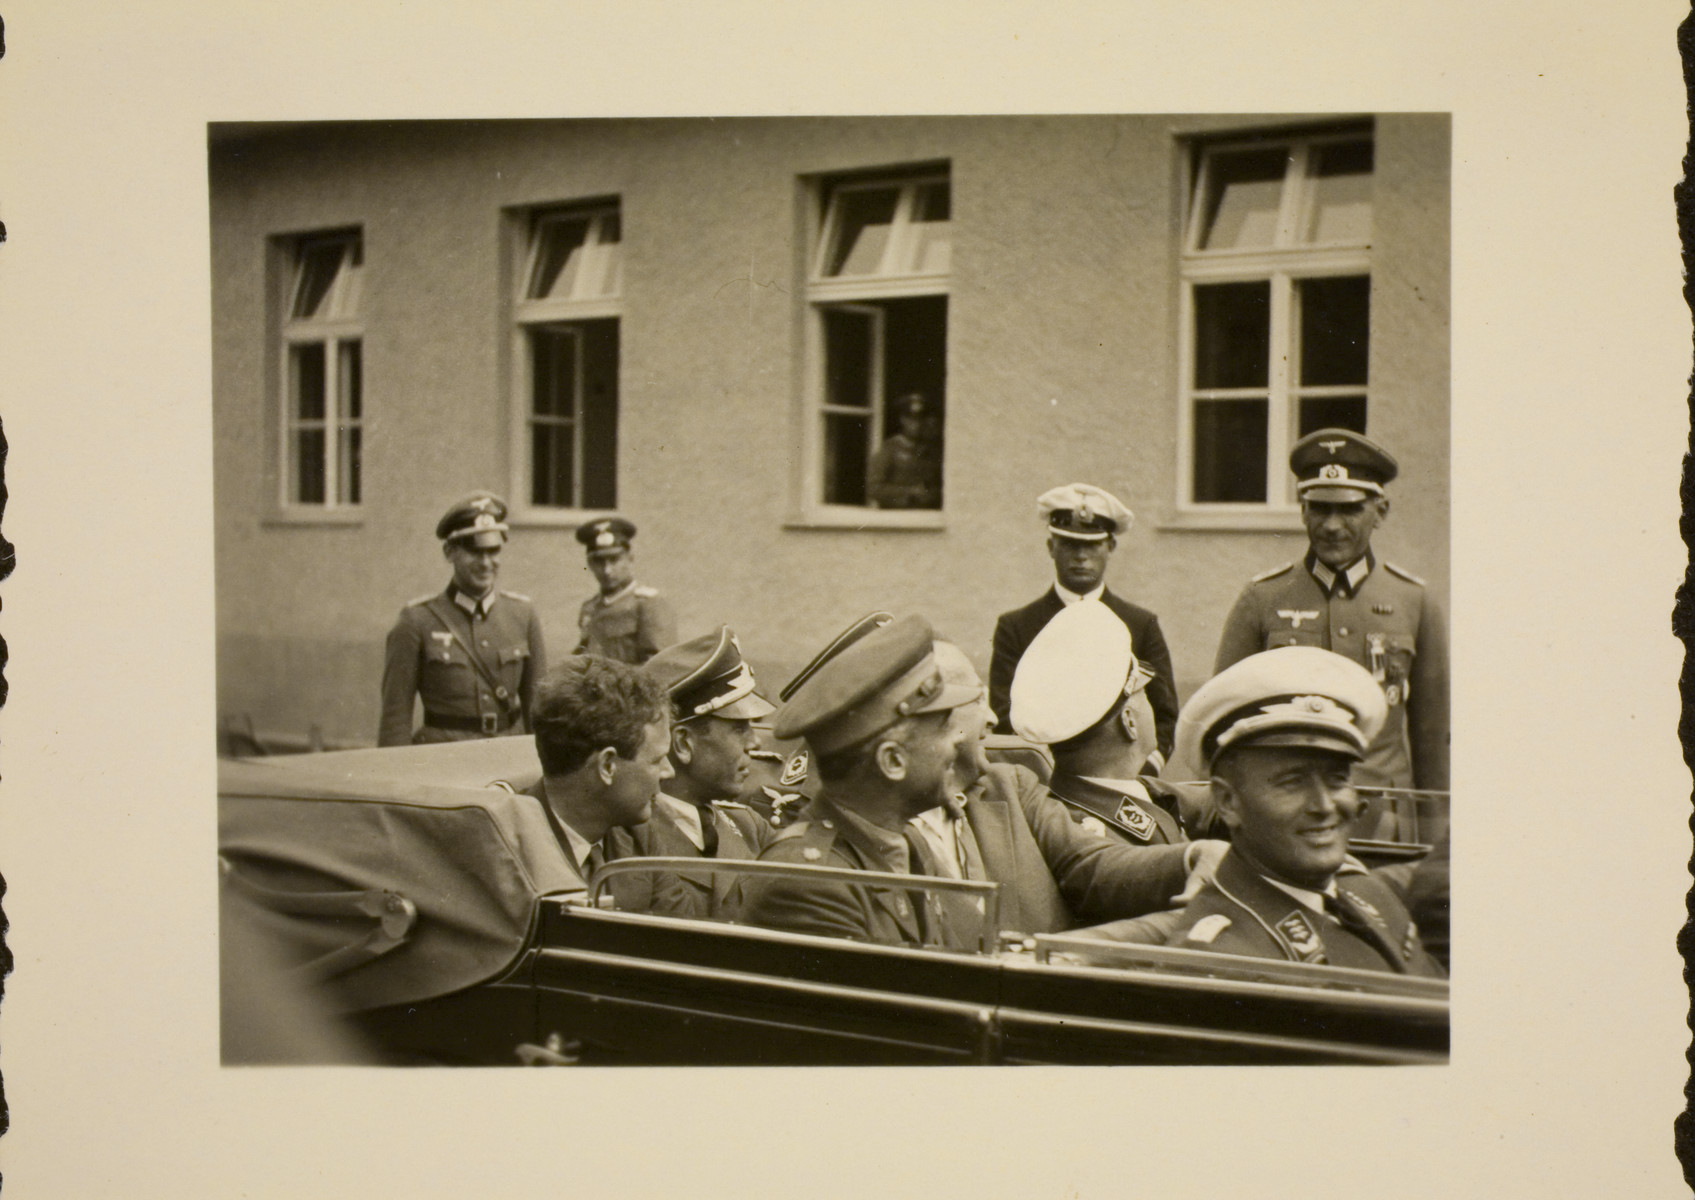 Charles Lindbergh rides in an automobile with Nazi officials upon his arrival at the Berlin Olympics.